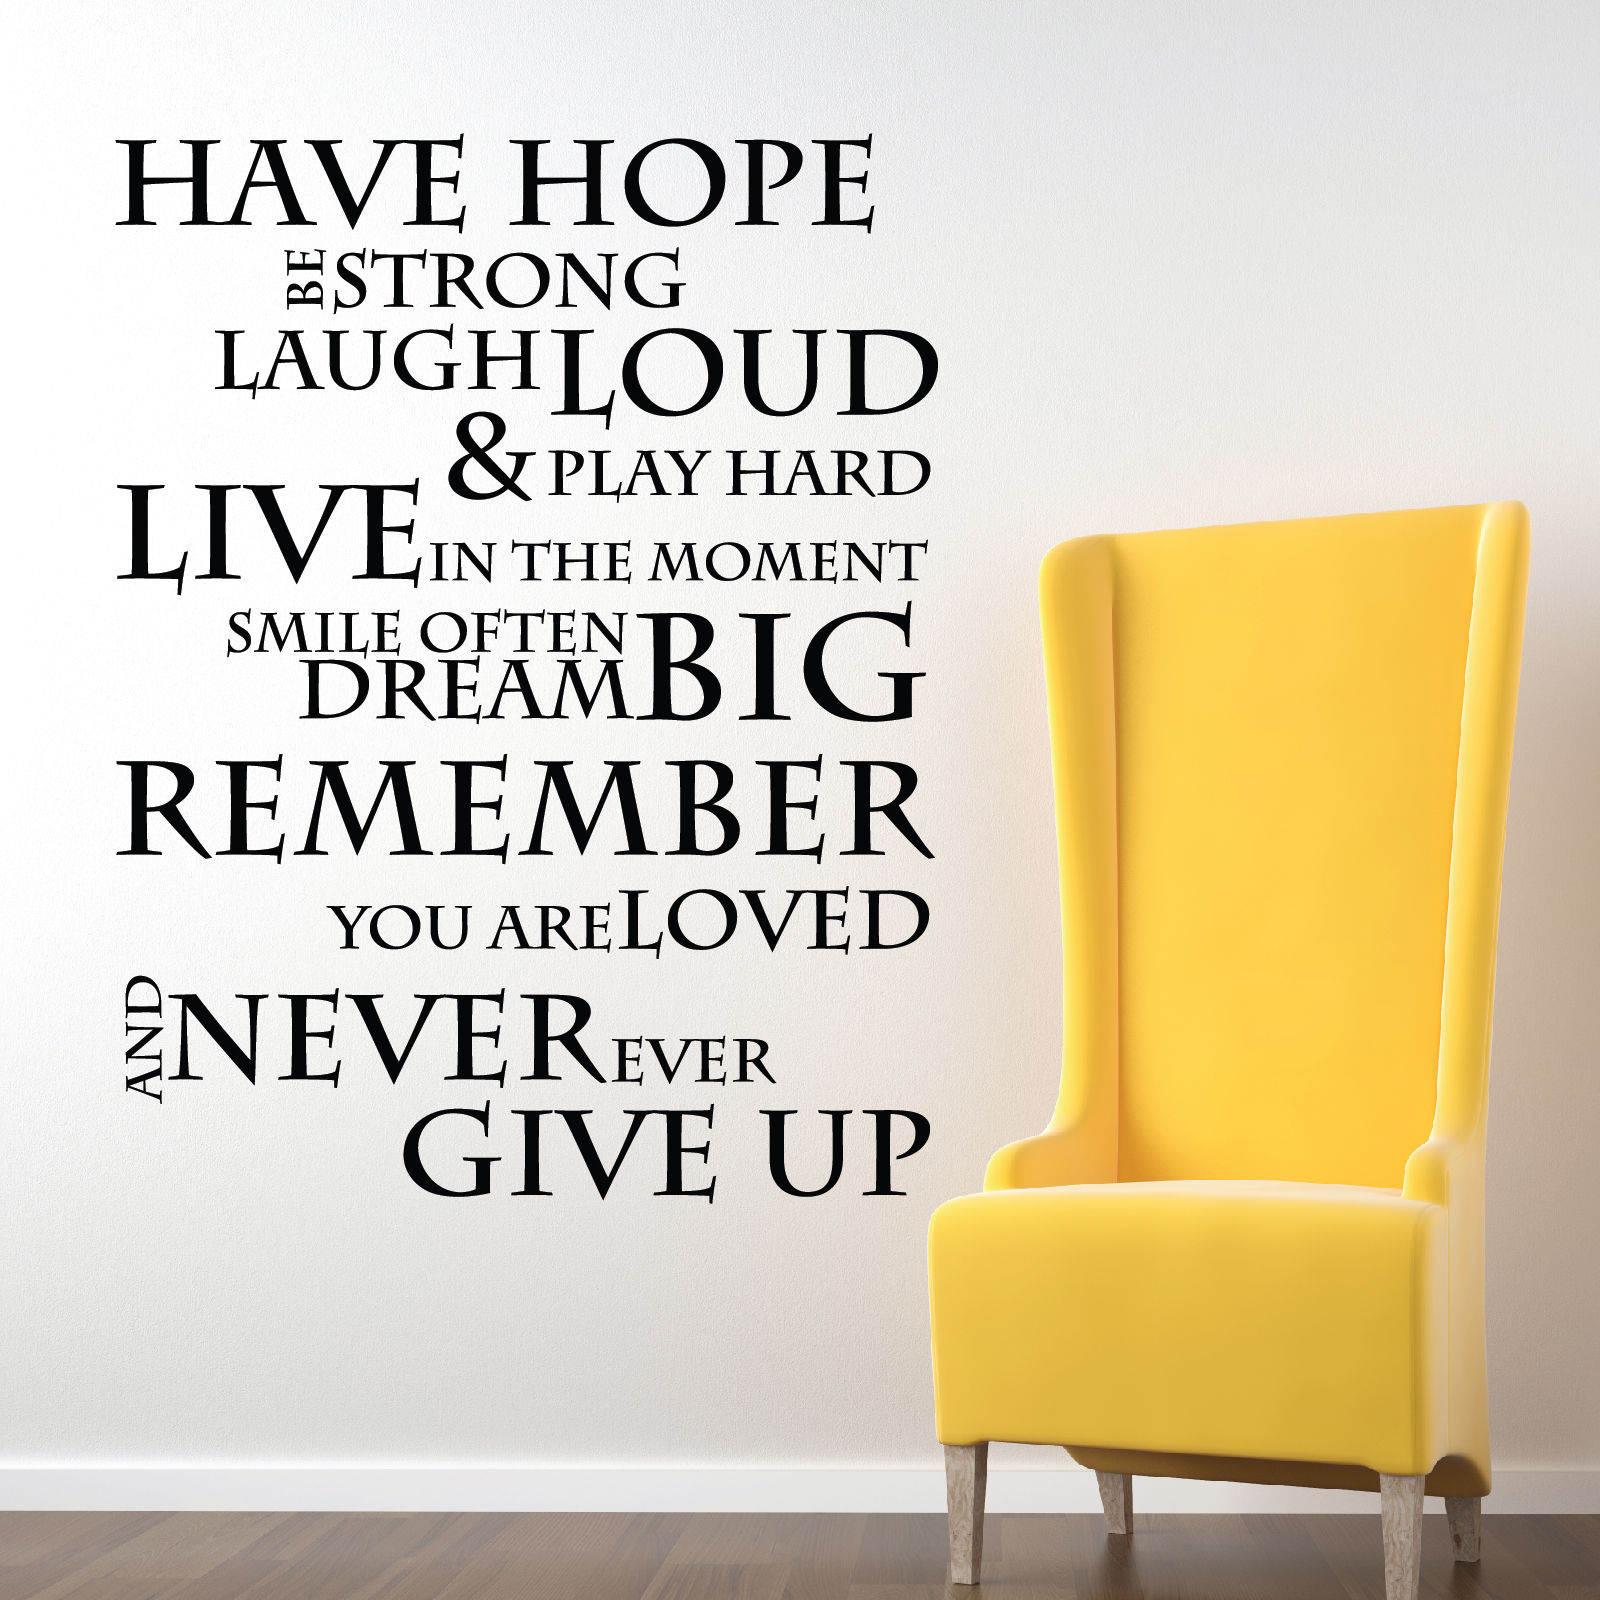 Inspirational Quotes About Hope: Online Buy Wholesale Hope Quotes From China Hope Quotes